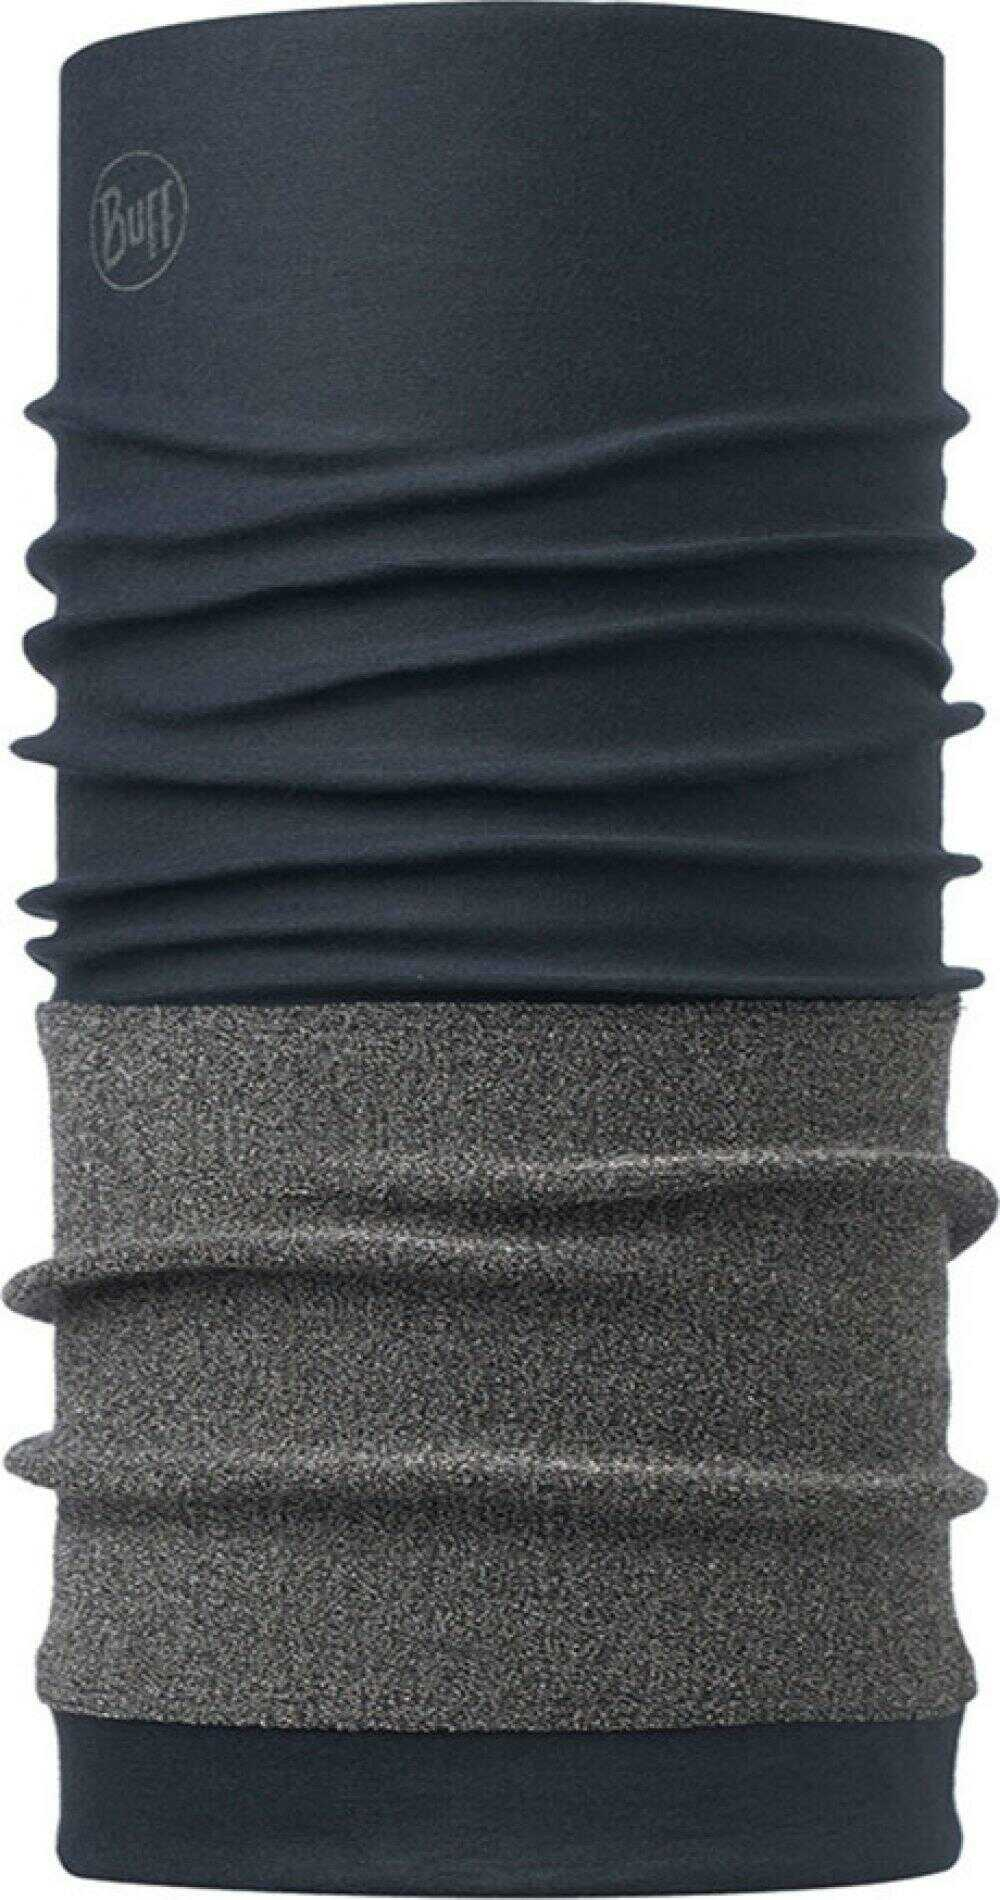 """Image of the Cutproof Buff® design """"Navy"""". It's blue tube (neck sock) with a grey cut protection layer covering most of the lower half of the Buff®. Source: buff.eu"""